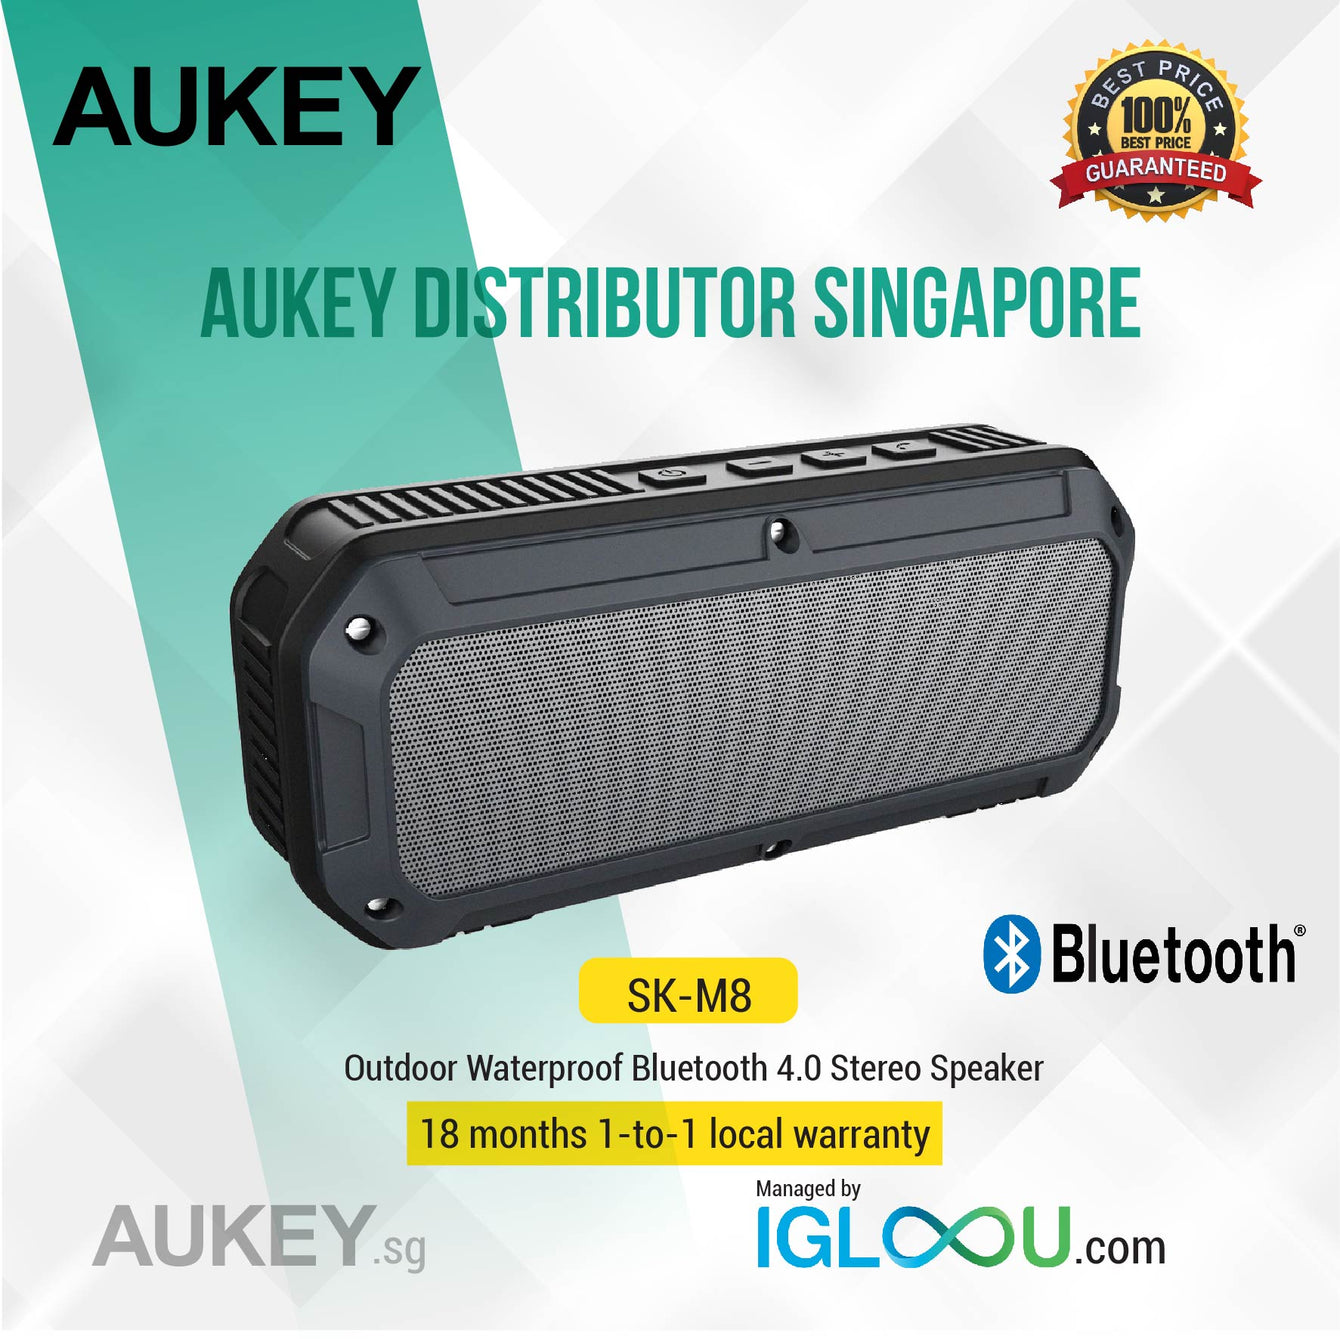 Aukey [SK-M8] Outdoor Waterproof Bluetooth 4.0 Stereo Speaker